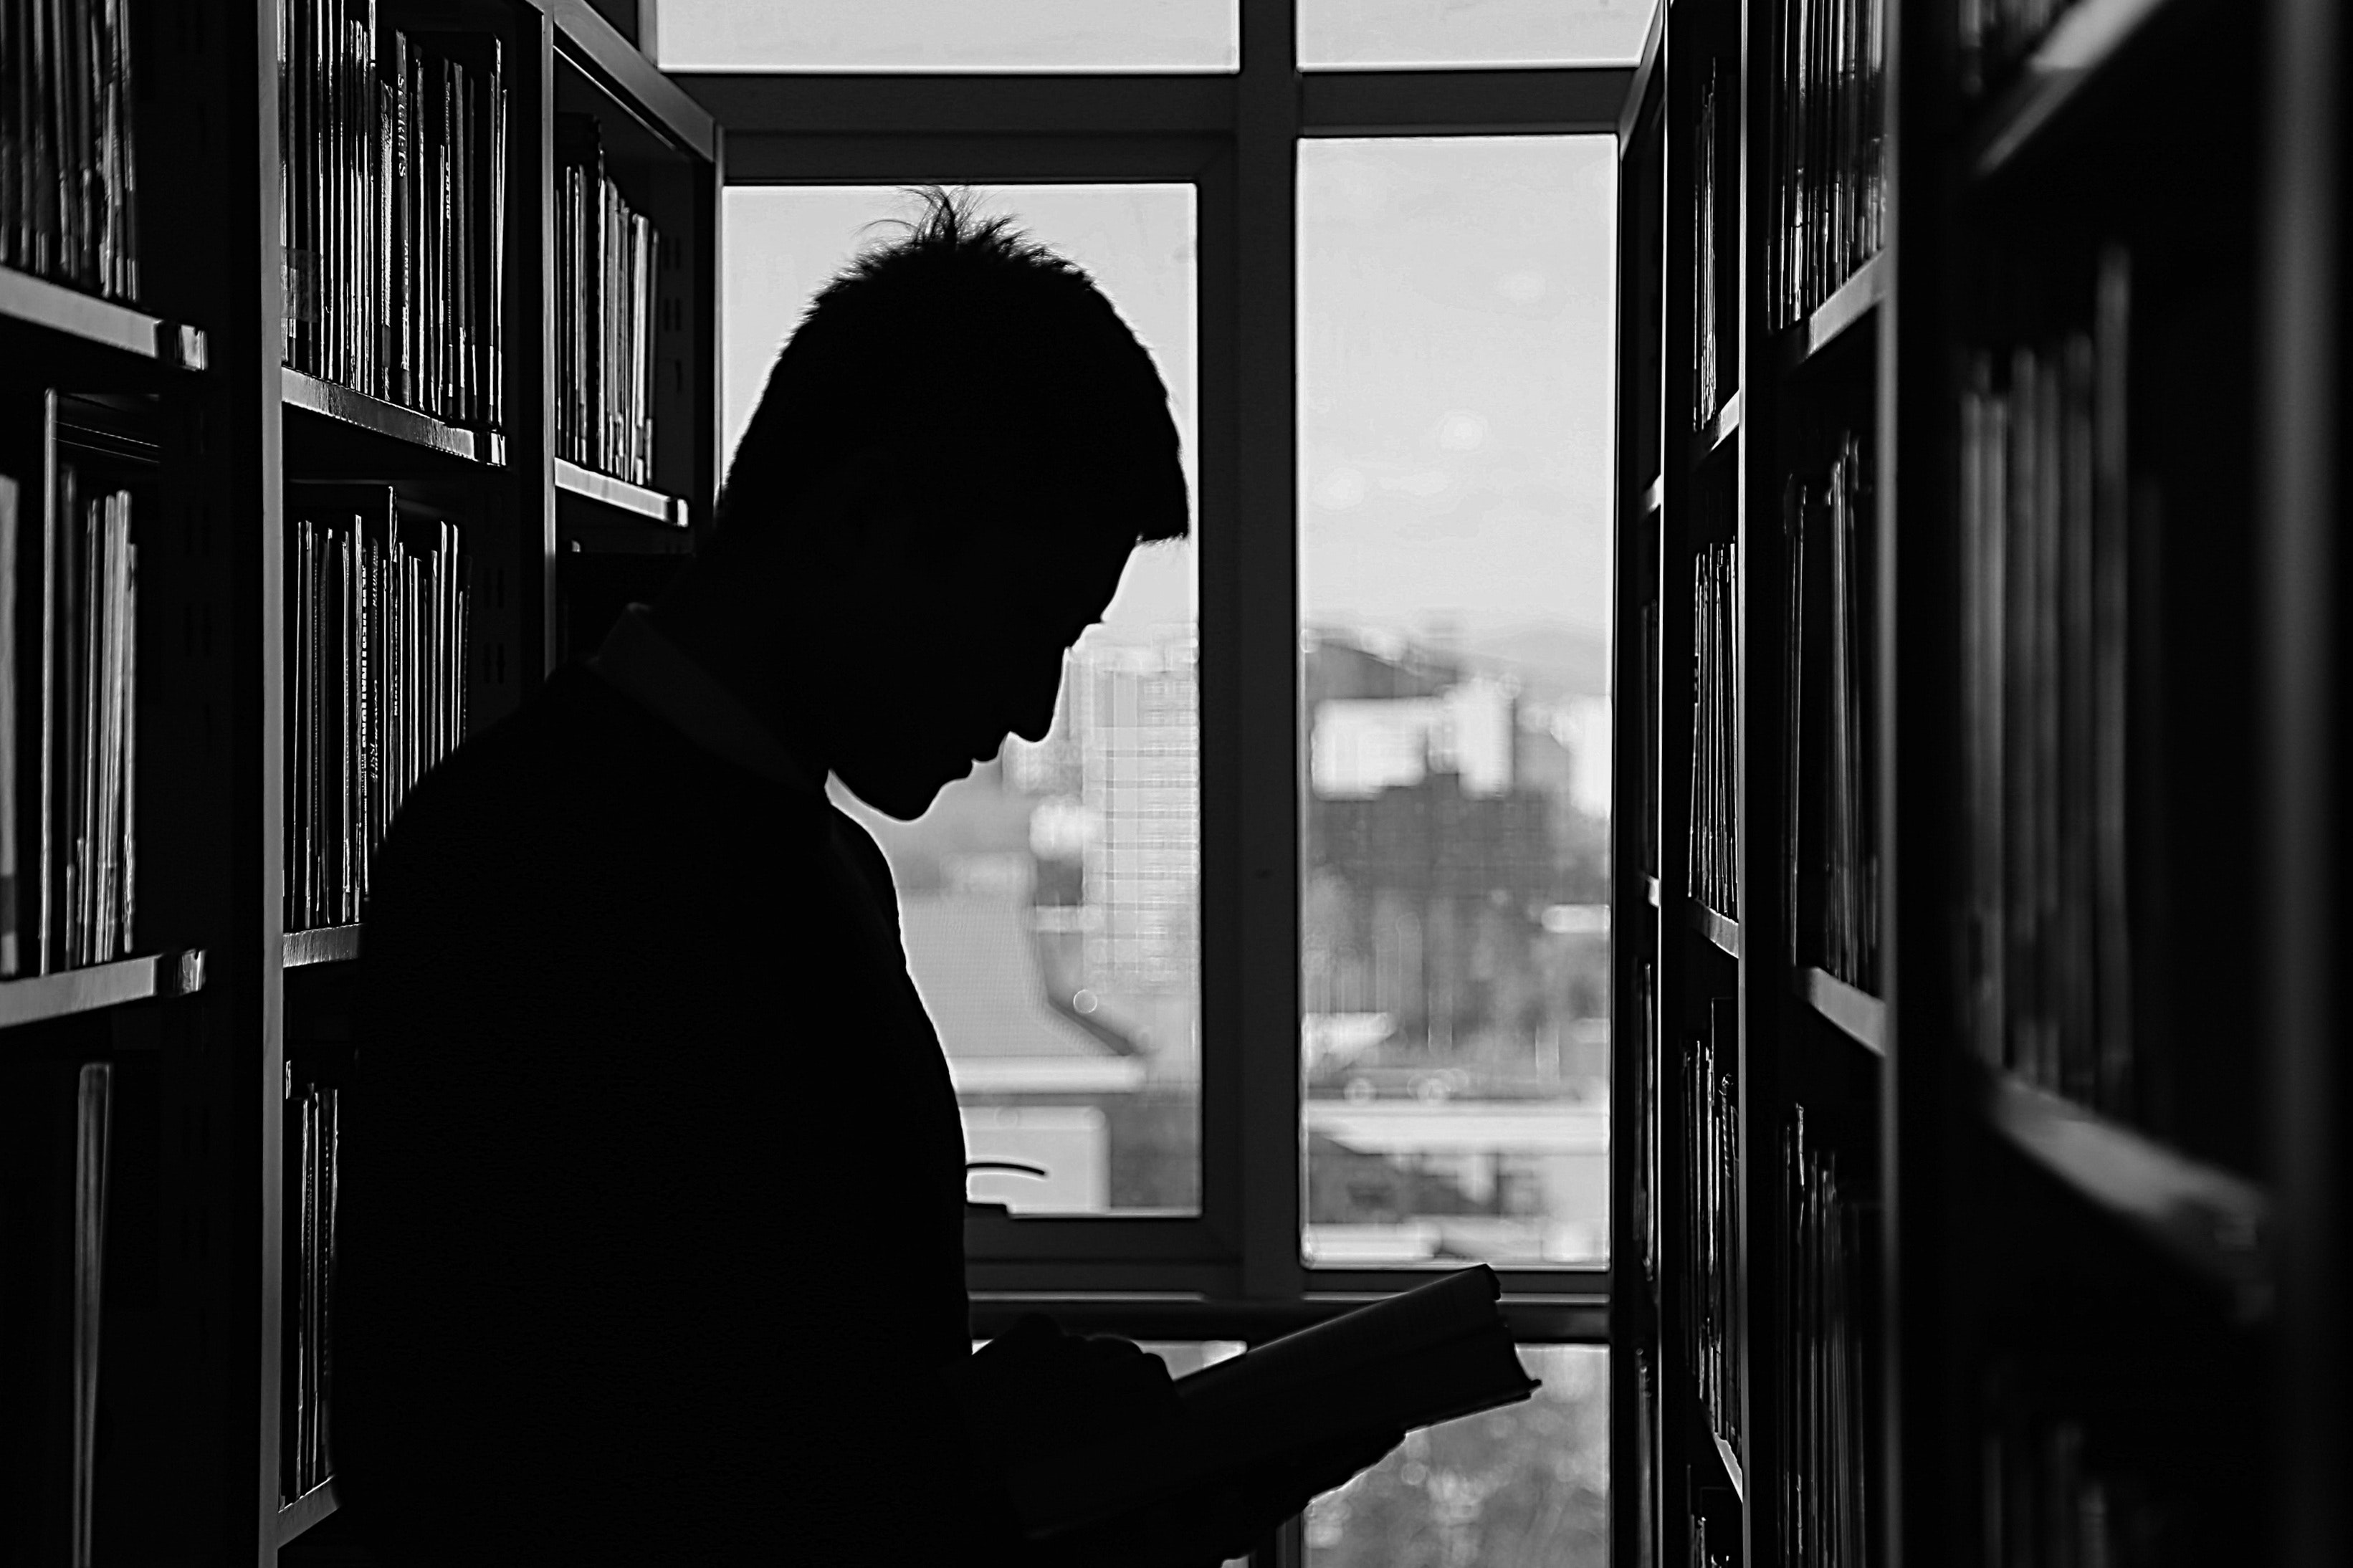 library, black and white, reading